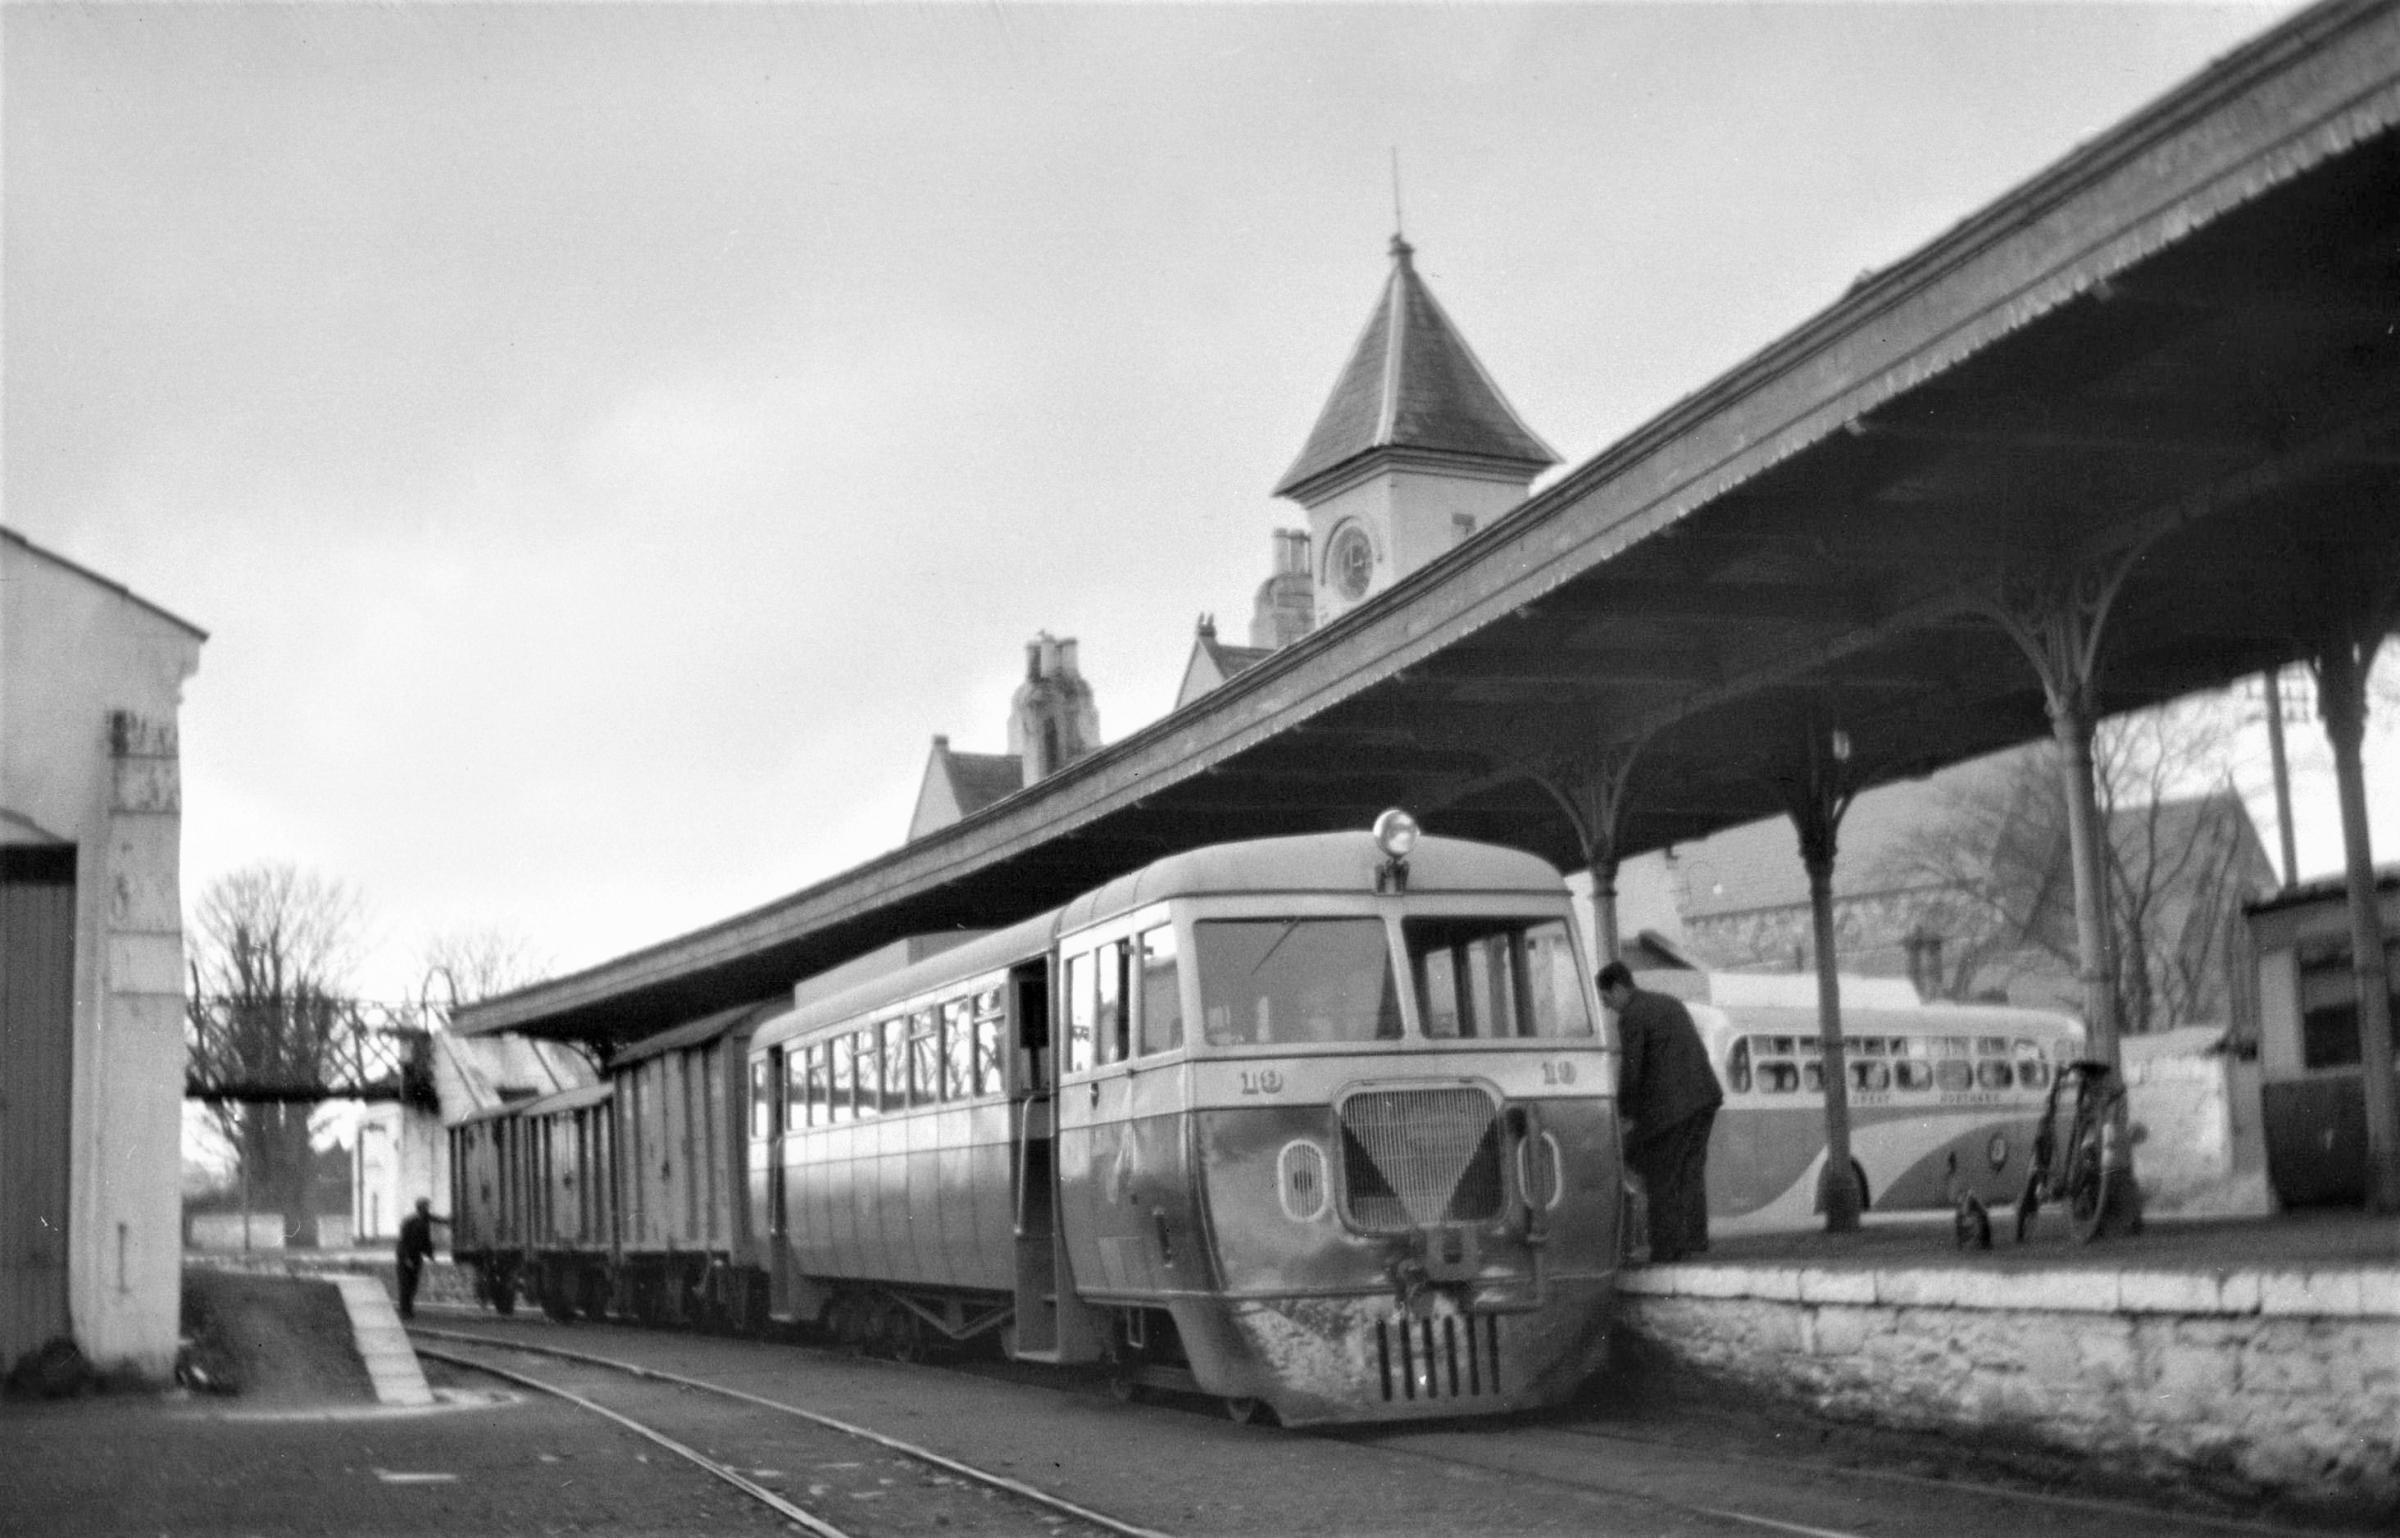 Remembering the 'rail buses' - and happy travels between Glasgow and Donegal